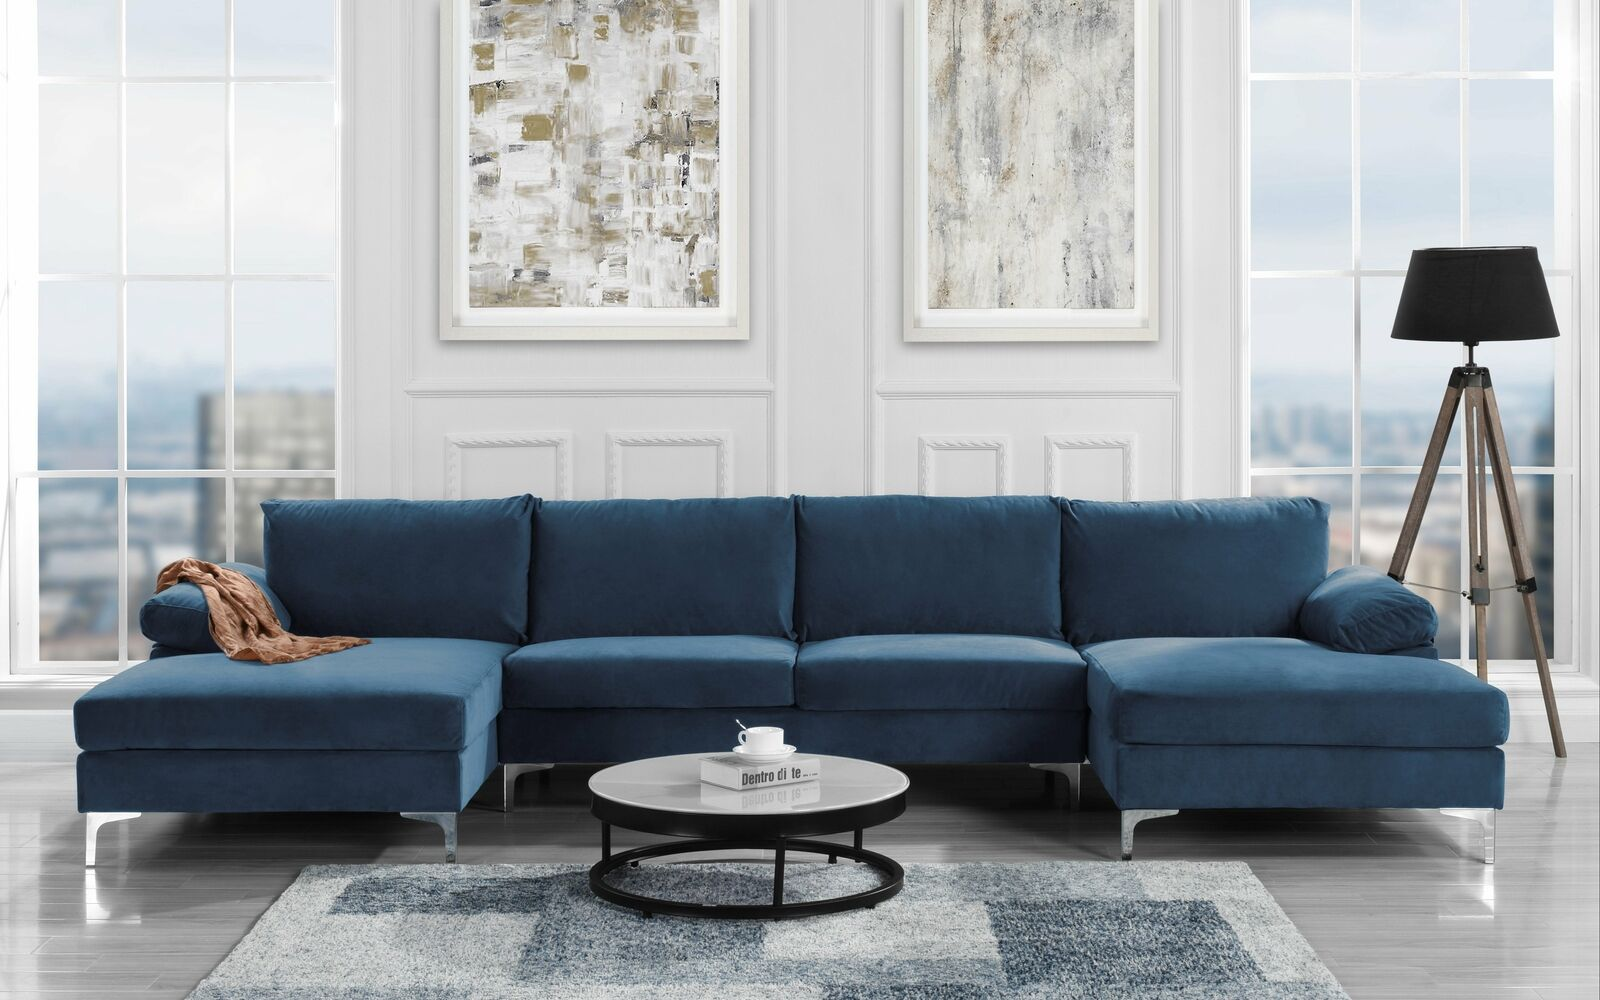 Modern Large Velvet U Shape Sectional Sofa Double Extra Wide Chaise Lounge,  Navy